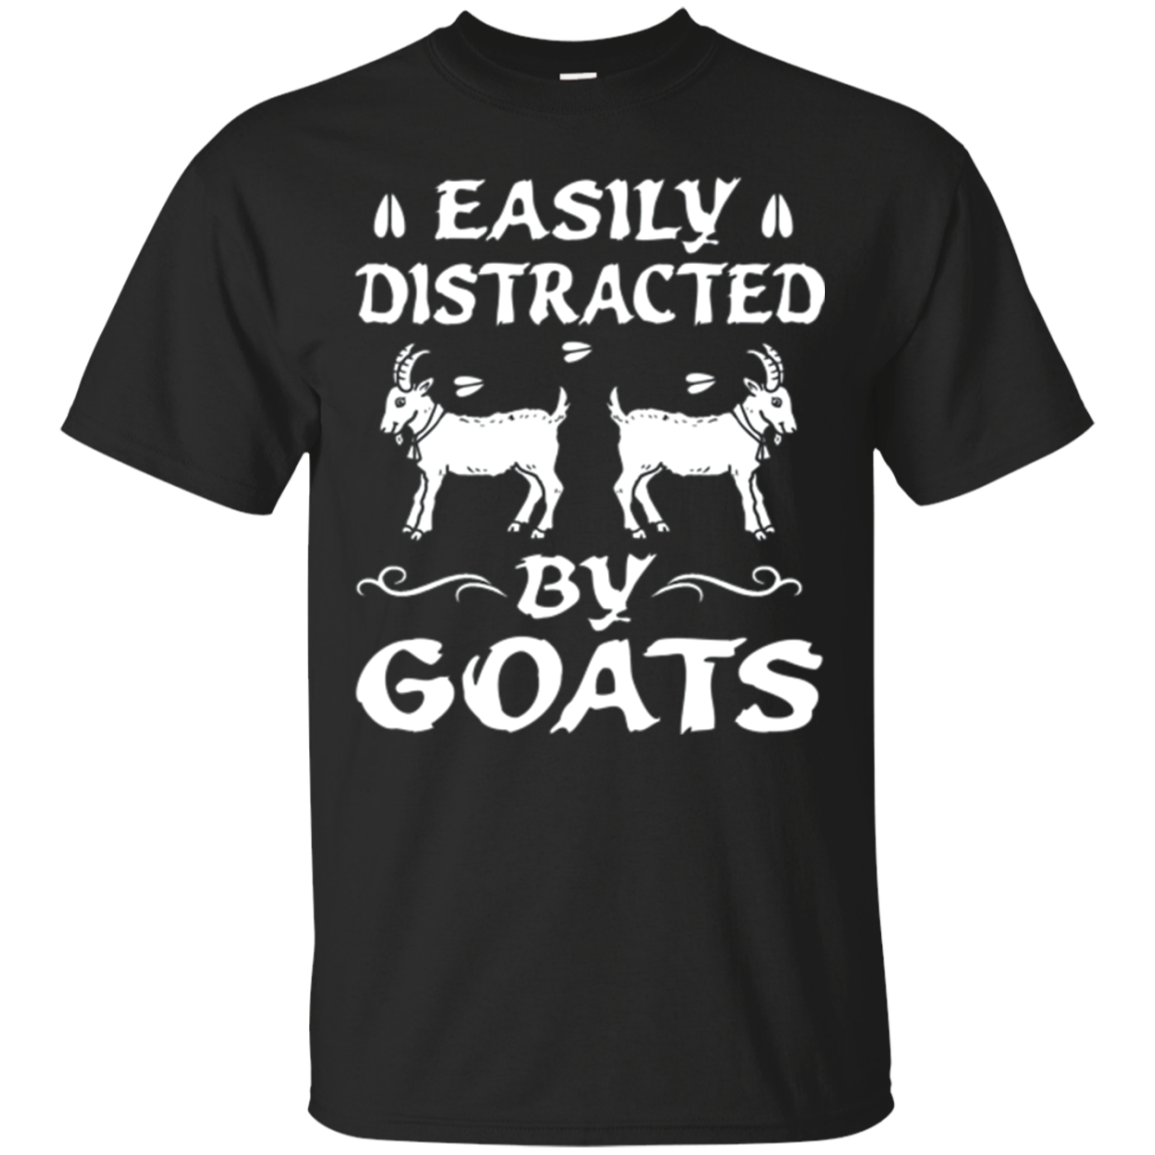 Easily Distracted by Goats Shirt - Funny Goat T Shirt